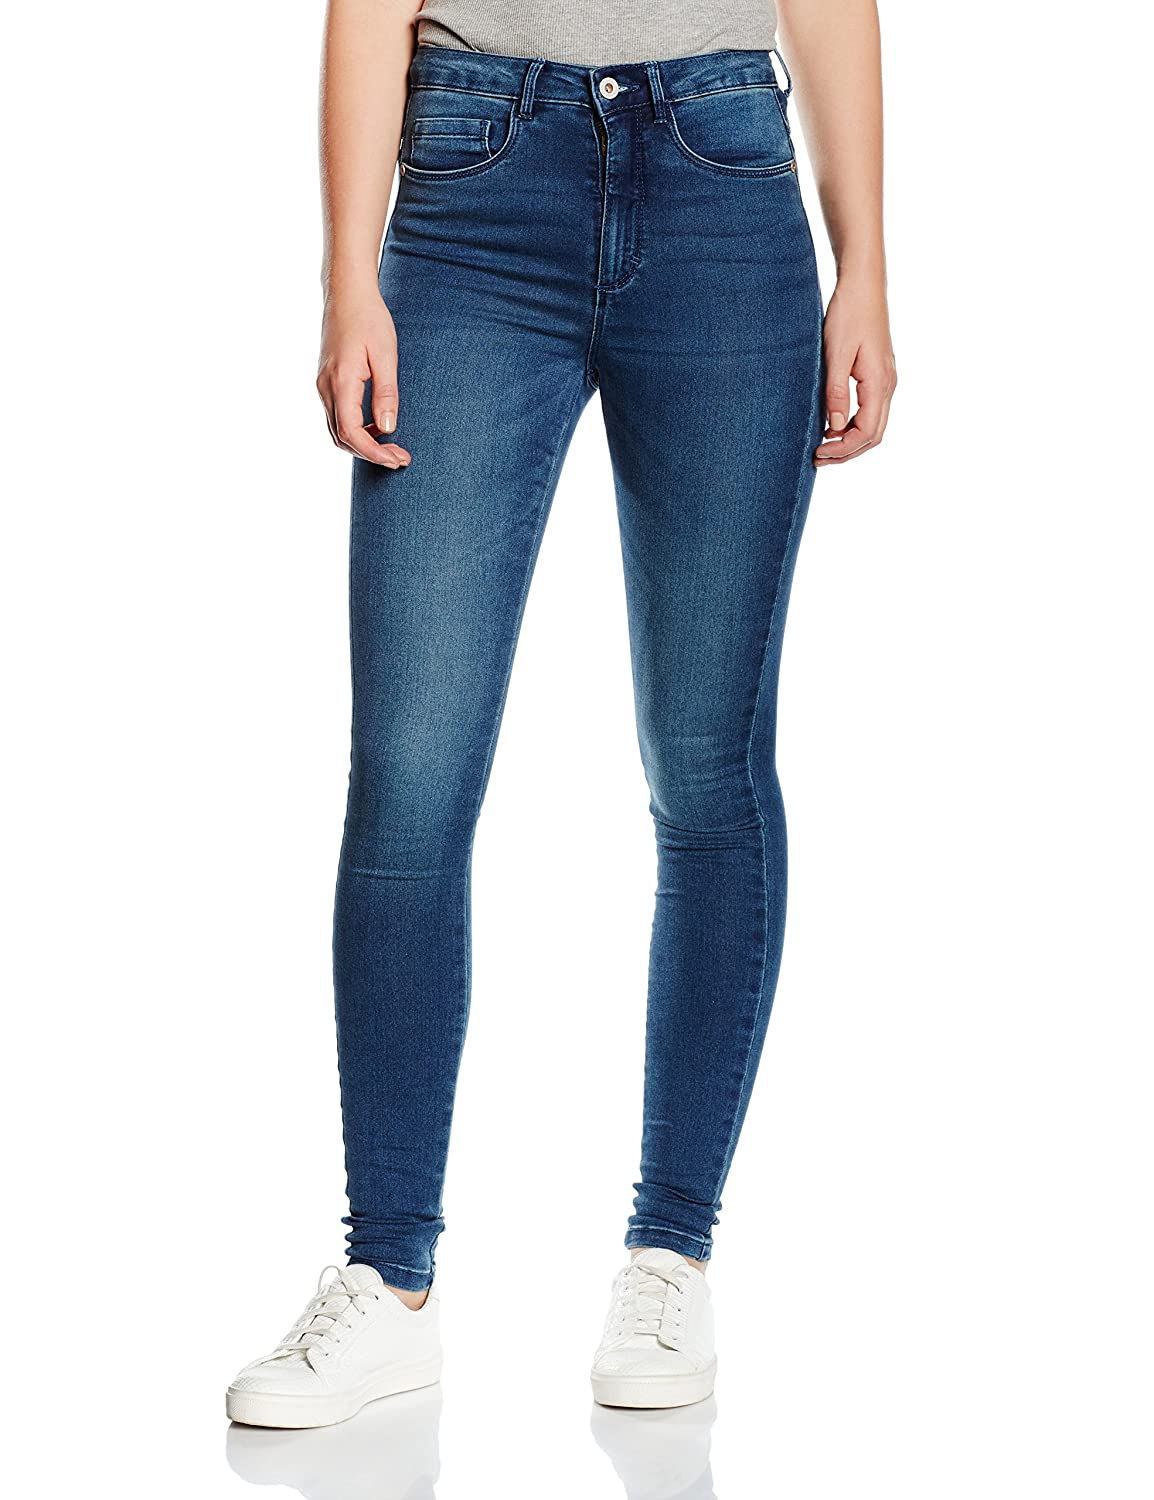 Only - Onlroyal High W.skinny Jeans Pim504 Noos, Jeans Donna 15097919